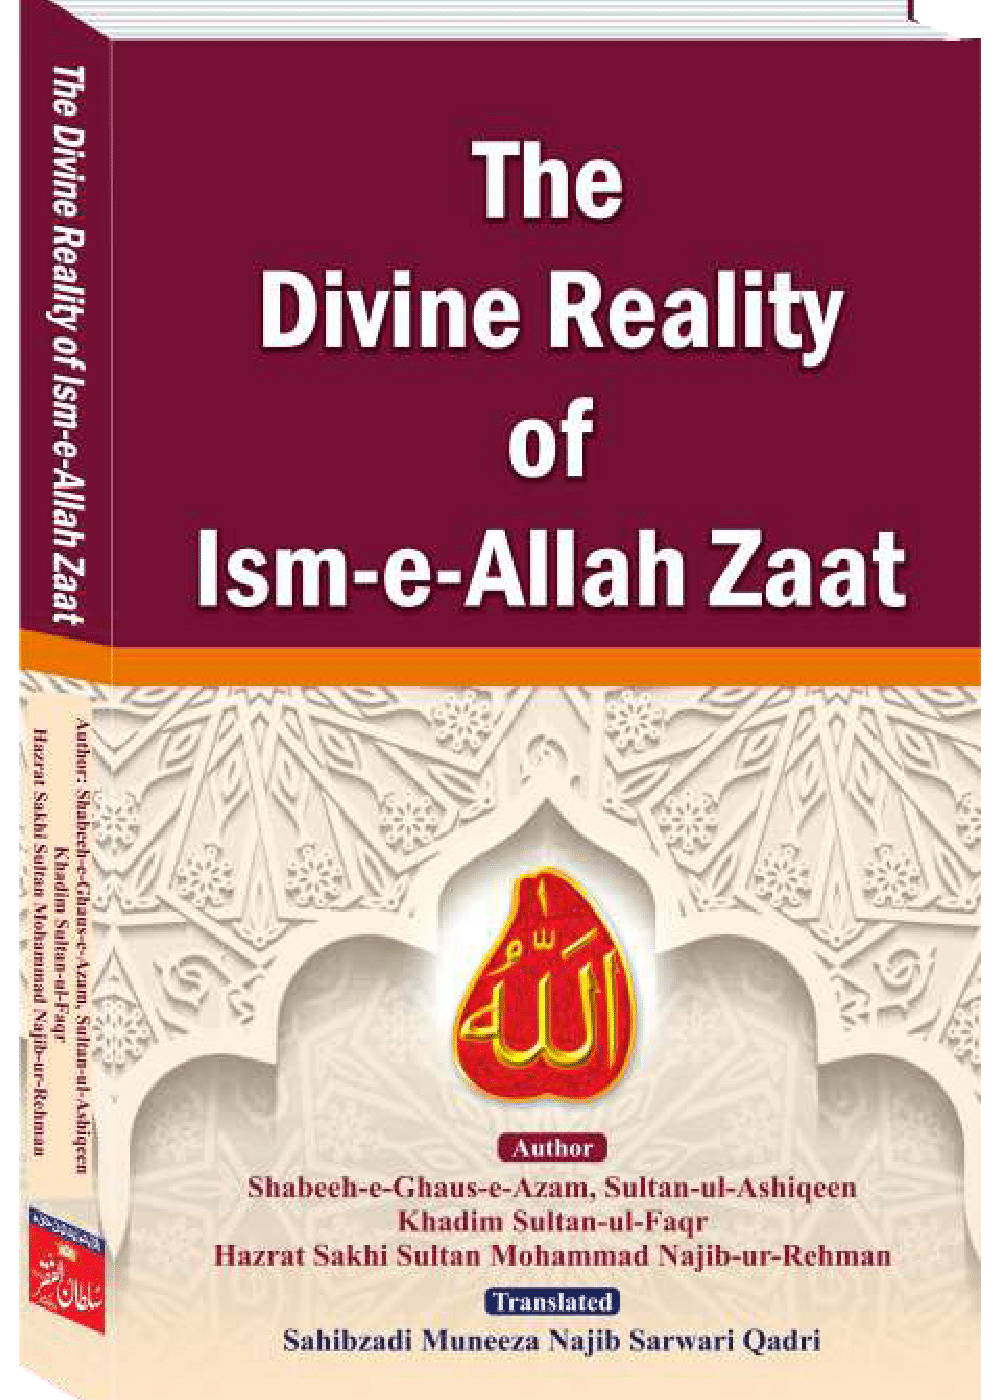 The Divine Reality of Ism e Allah Zaat